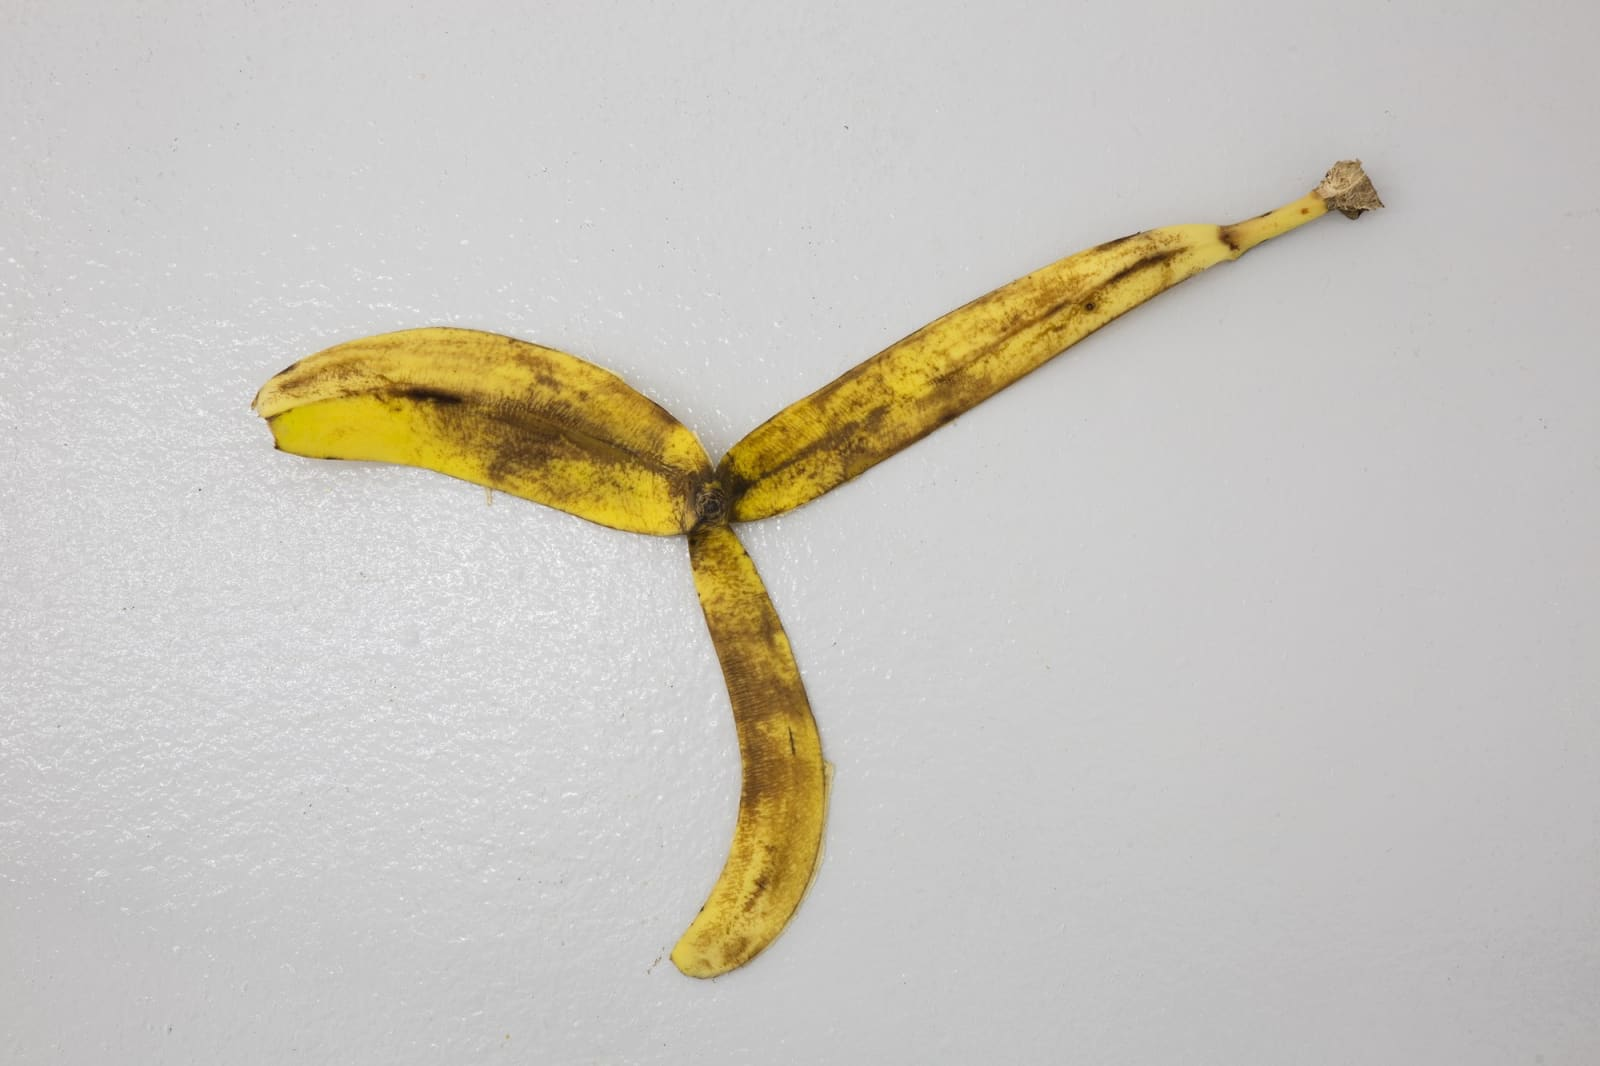 """Adriana Lara's Installation (Banana Peel), 2008, when it was shown at the """"Luluennial II,"""" curated by Andrew Berardini and Chris Sharp at Lulu in Mexico City, 2018.Courtesy Lulu"""